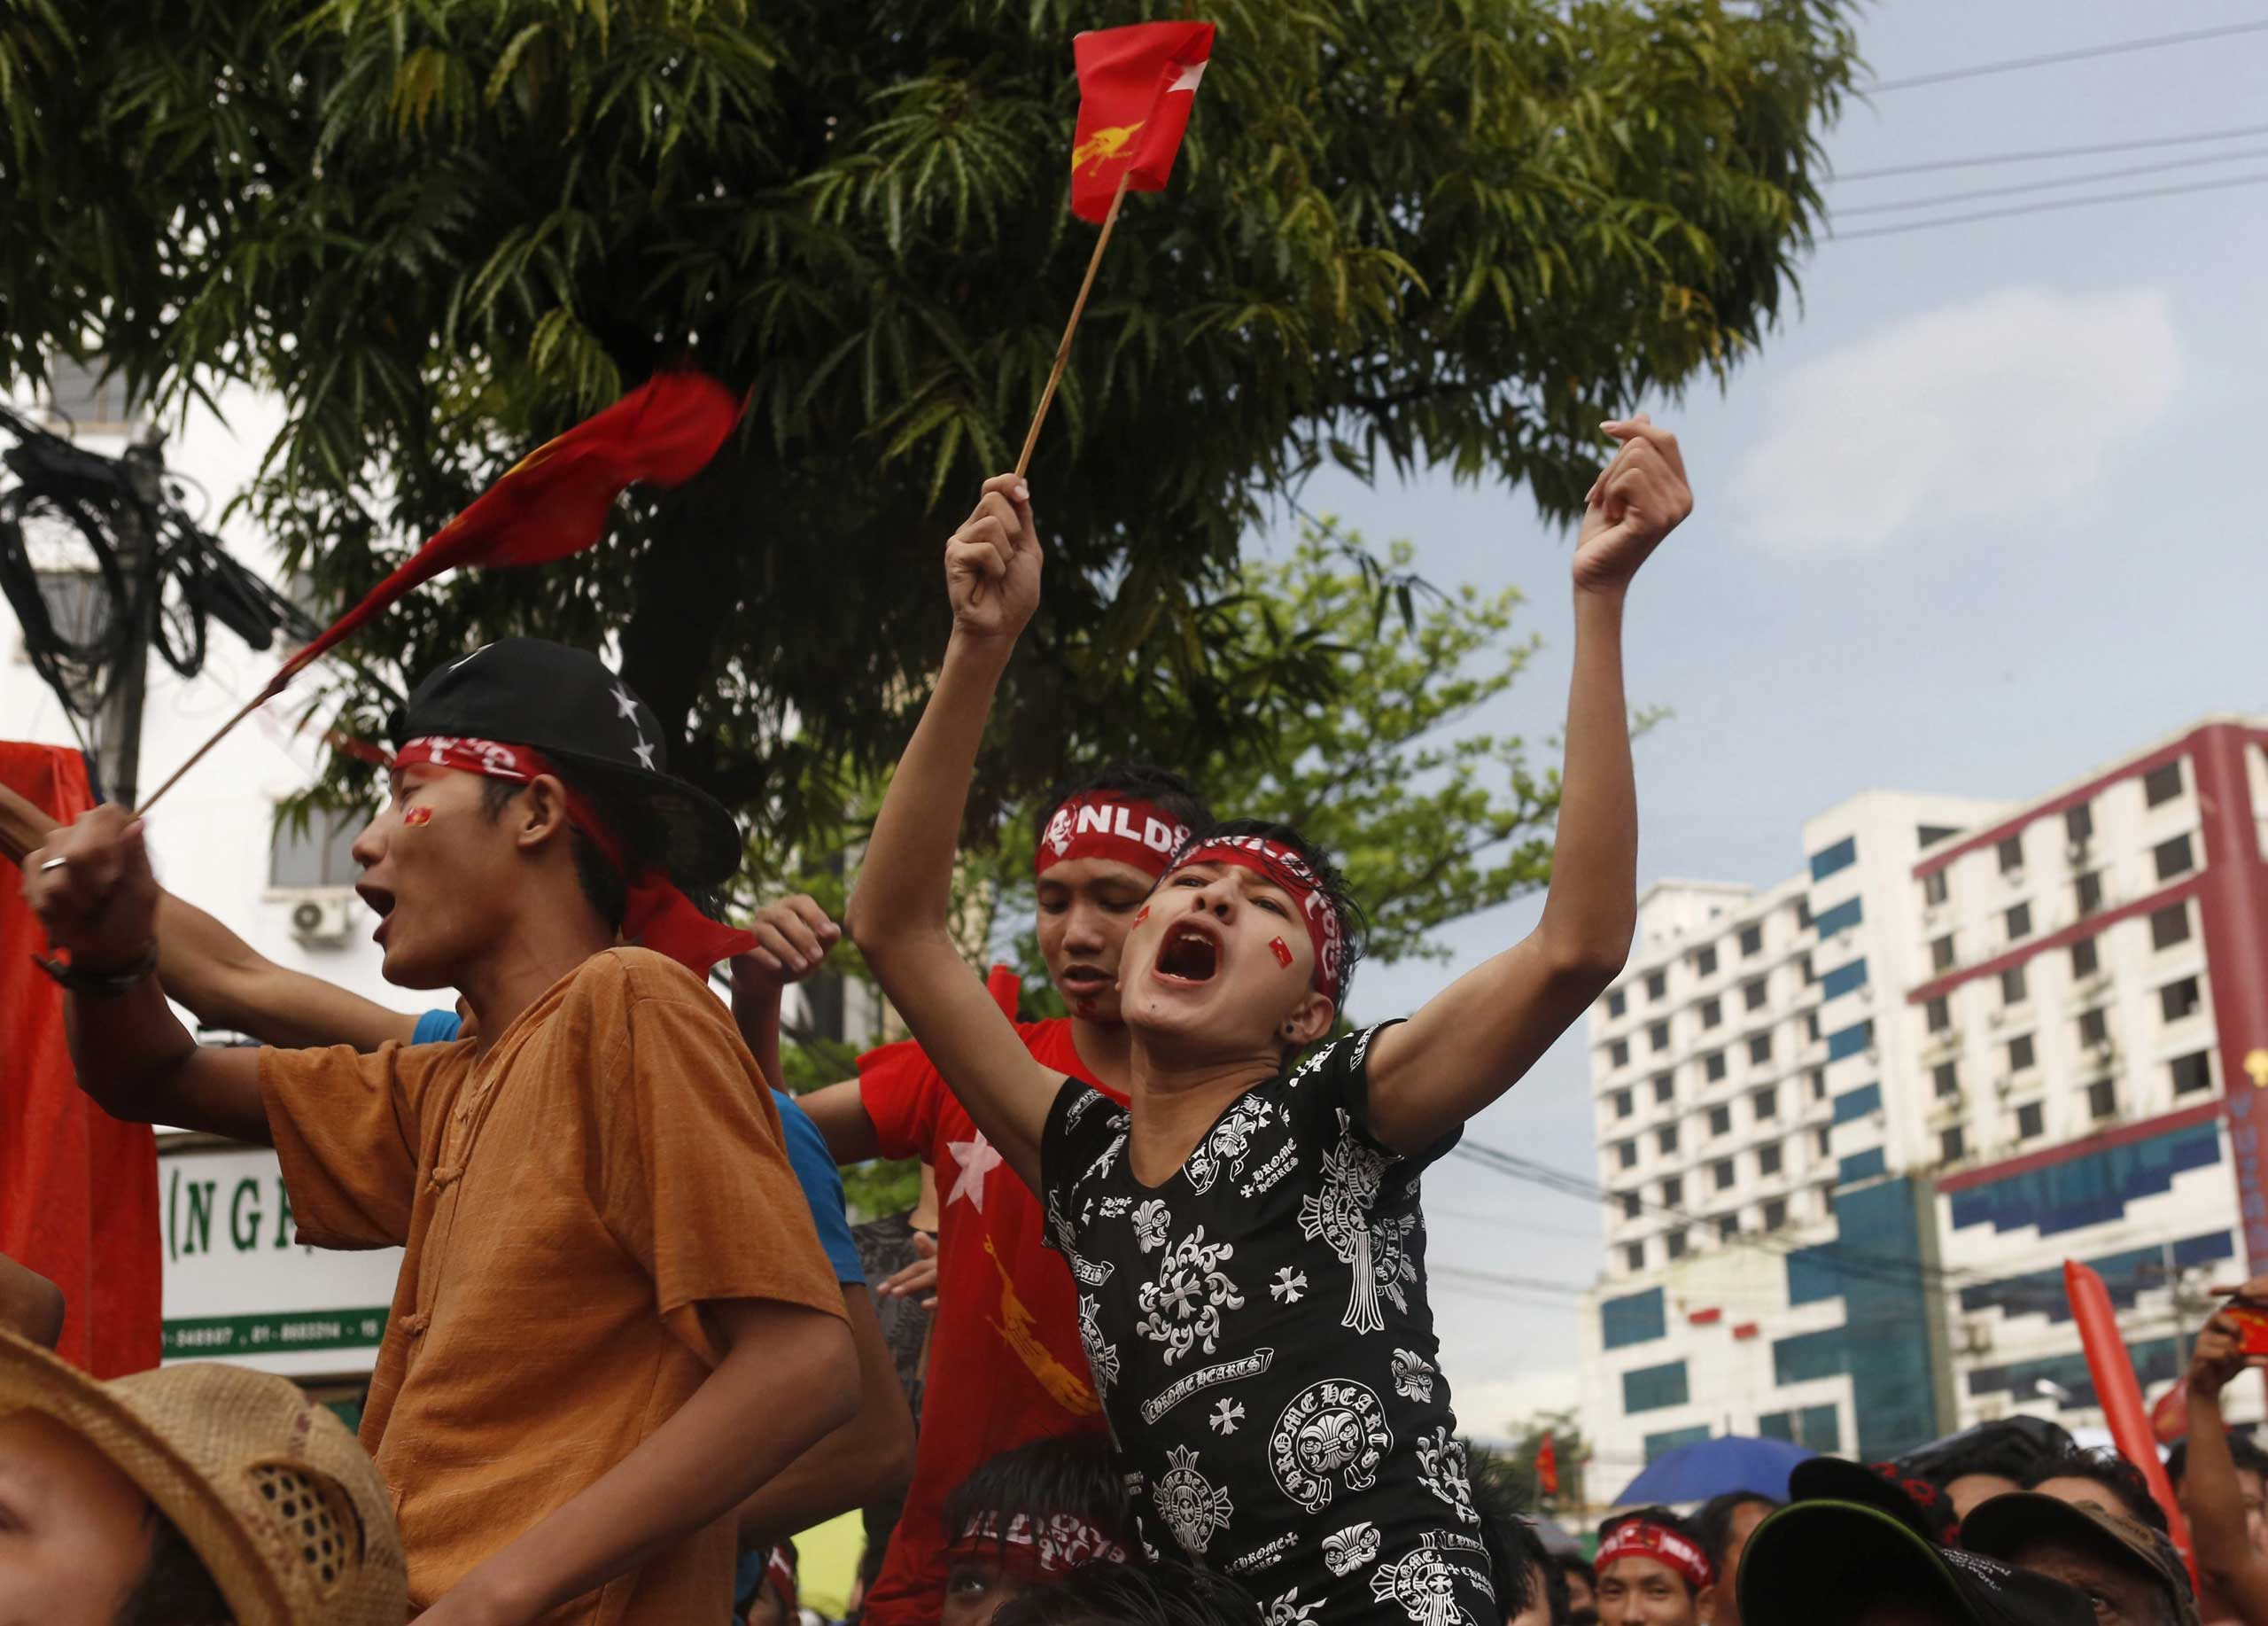 Supporters of National League for Democracy (NLD) party celebrate in front of NLD headquarters a day after the general elections in Rangoon, Burma, on Nov. 9,  2015.